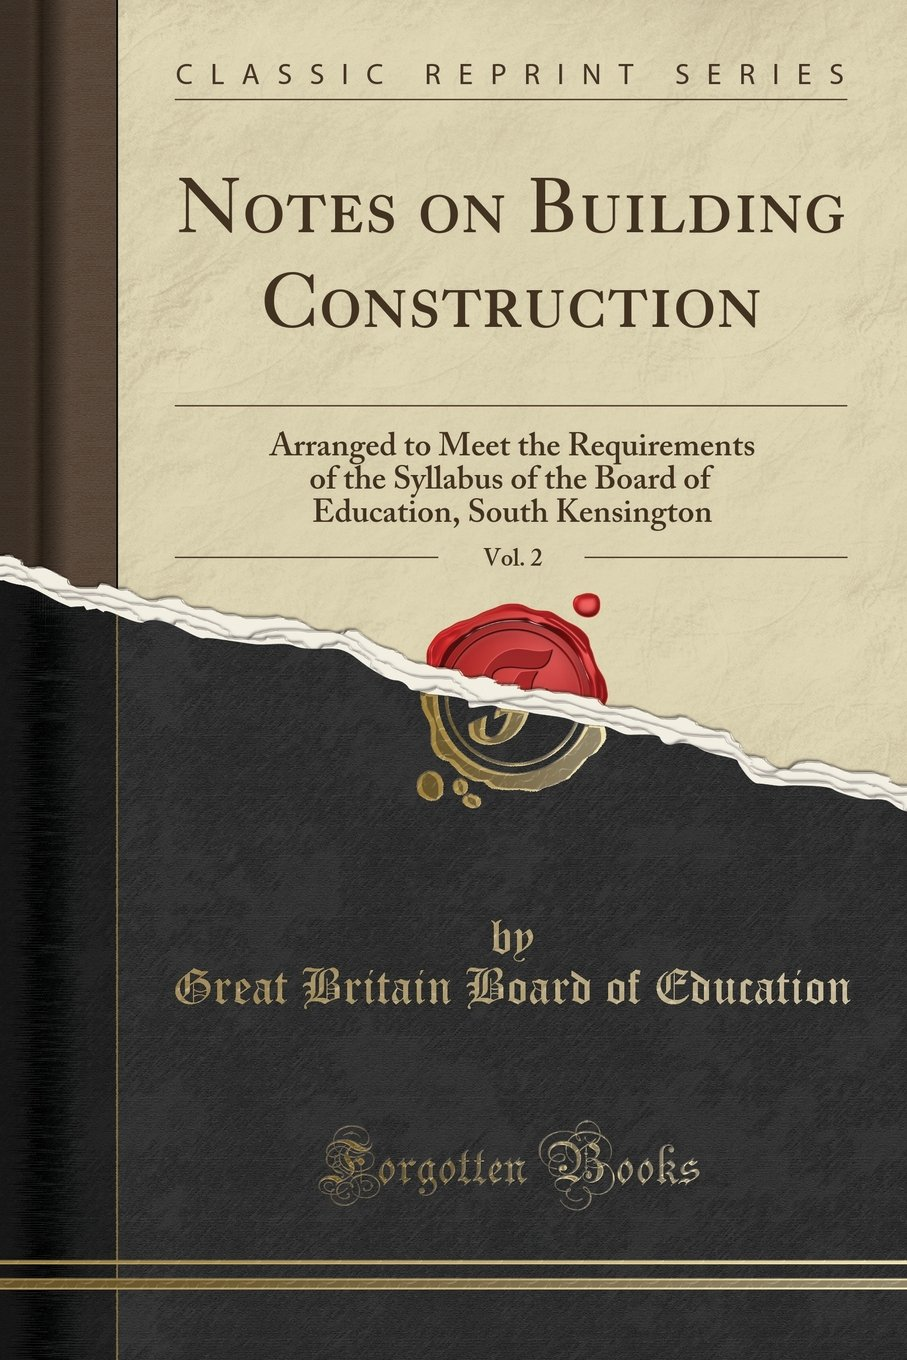 Notes on Building Construction, Vol. 2: Arranged to Meet the Requirements of the Syllabus of the Board of Education, South Kensington (Classic Reprint) PDF